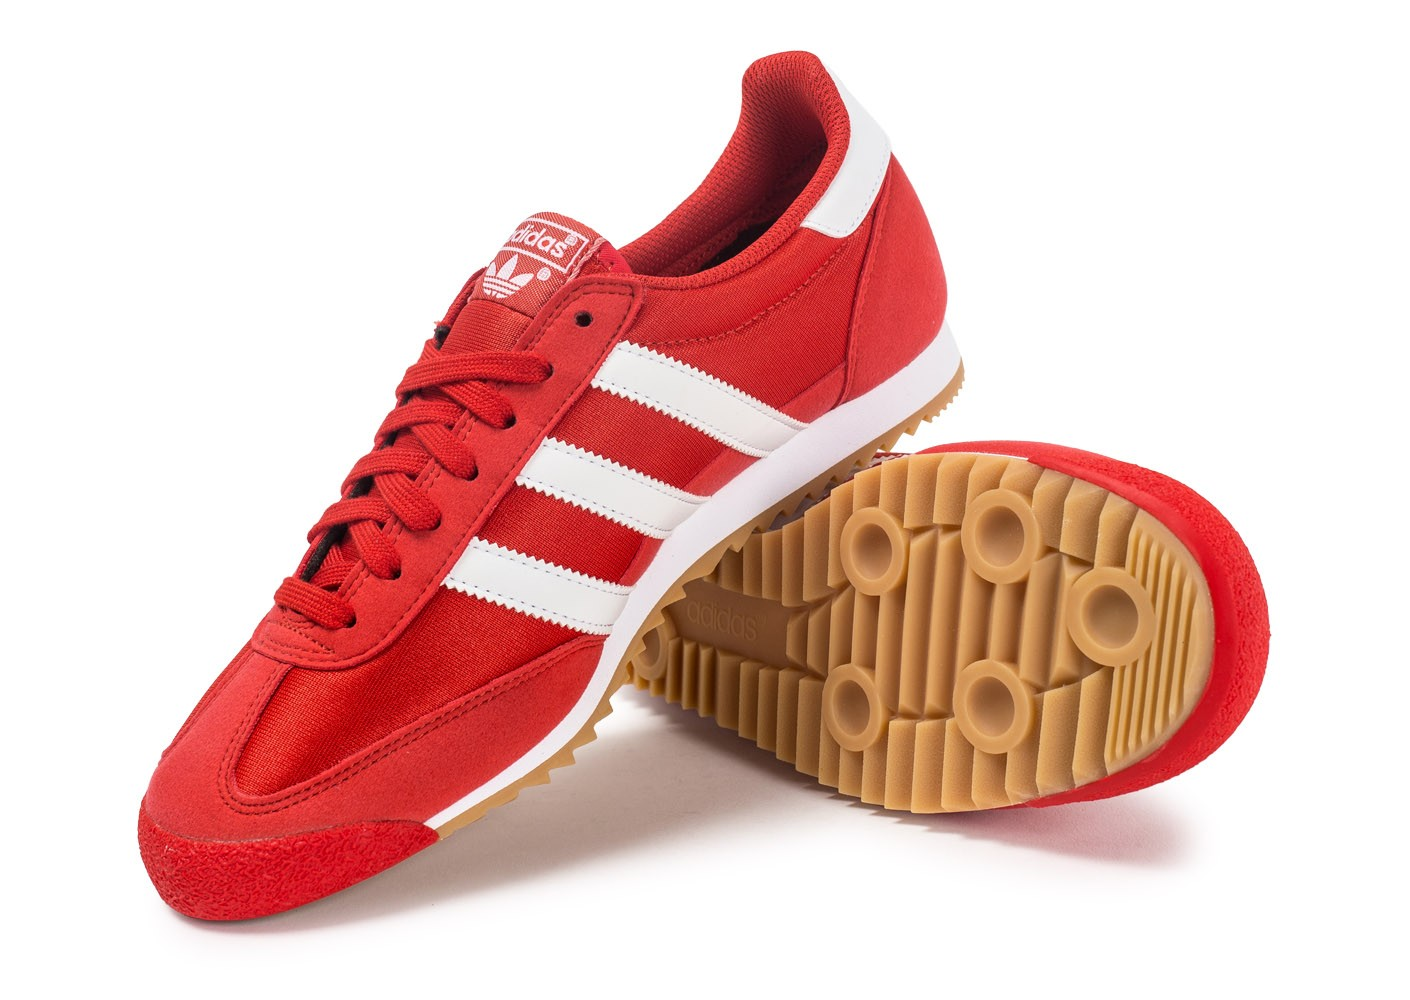 adidas Dragon OG rouge - Chaussures Baskets homme - Chausport